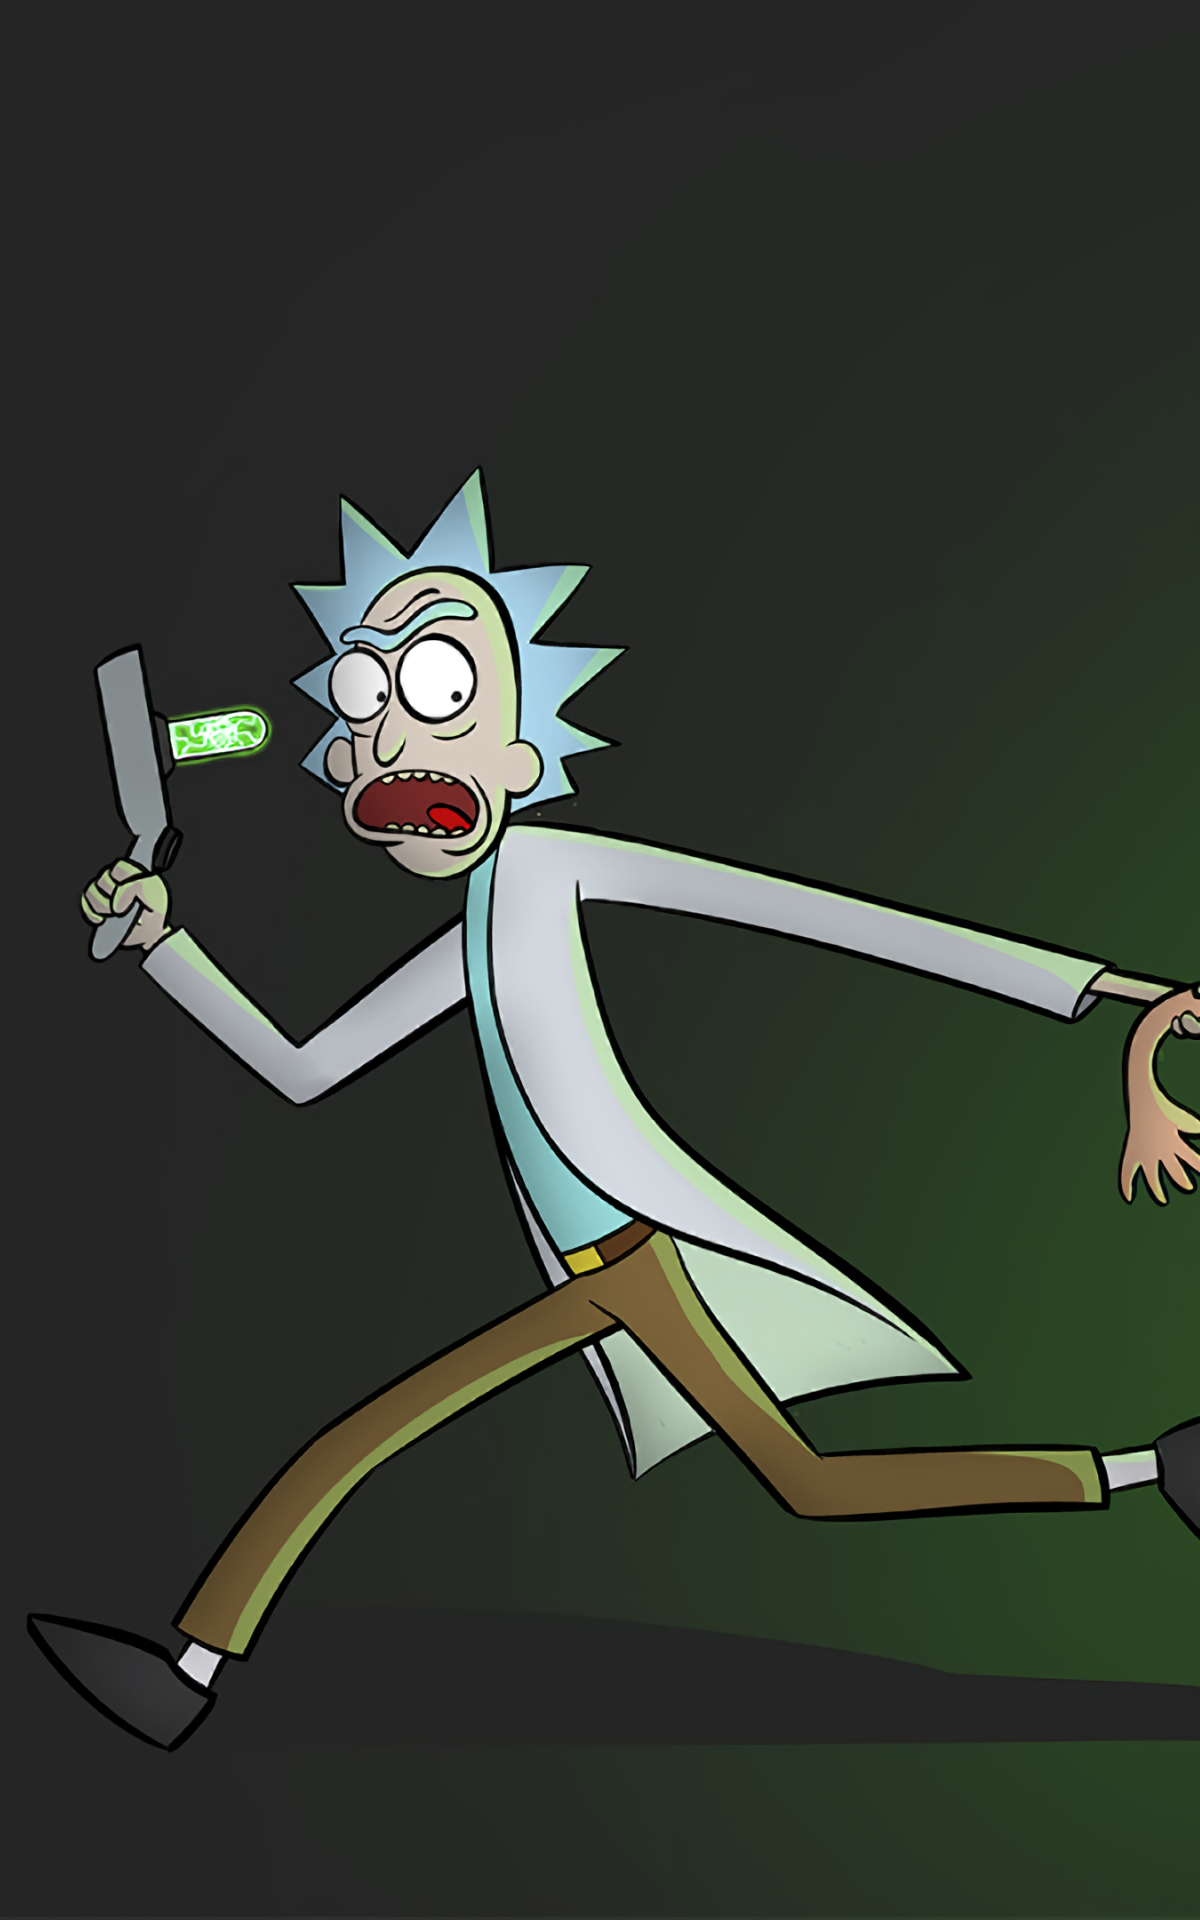 rick and morty portal a2xnZm2UmZqaraWkpJRmZ2VlrWZuZ2U